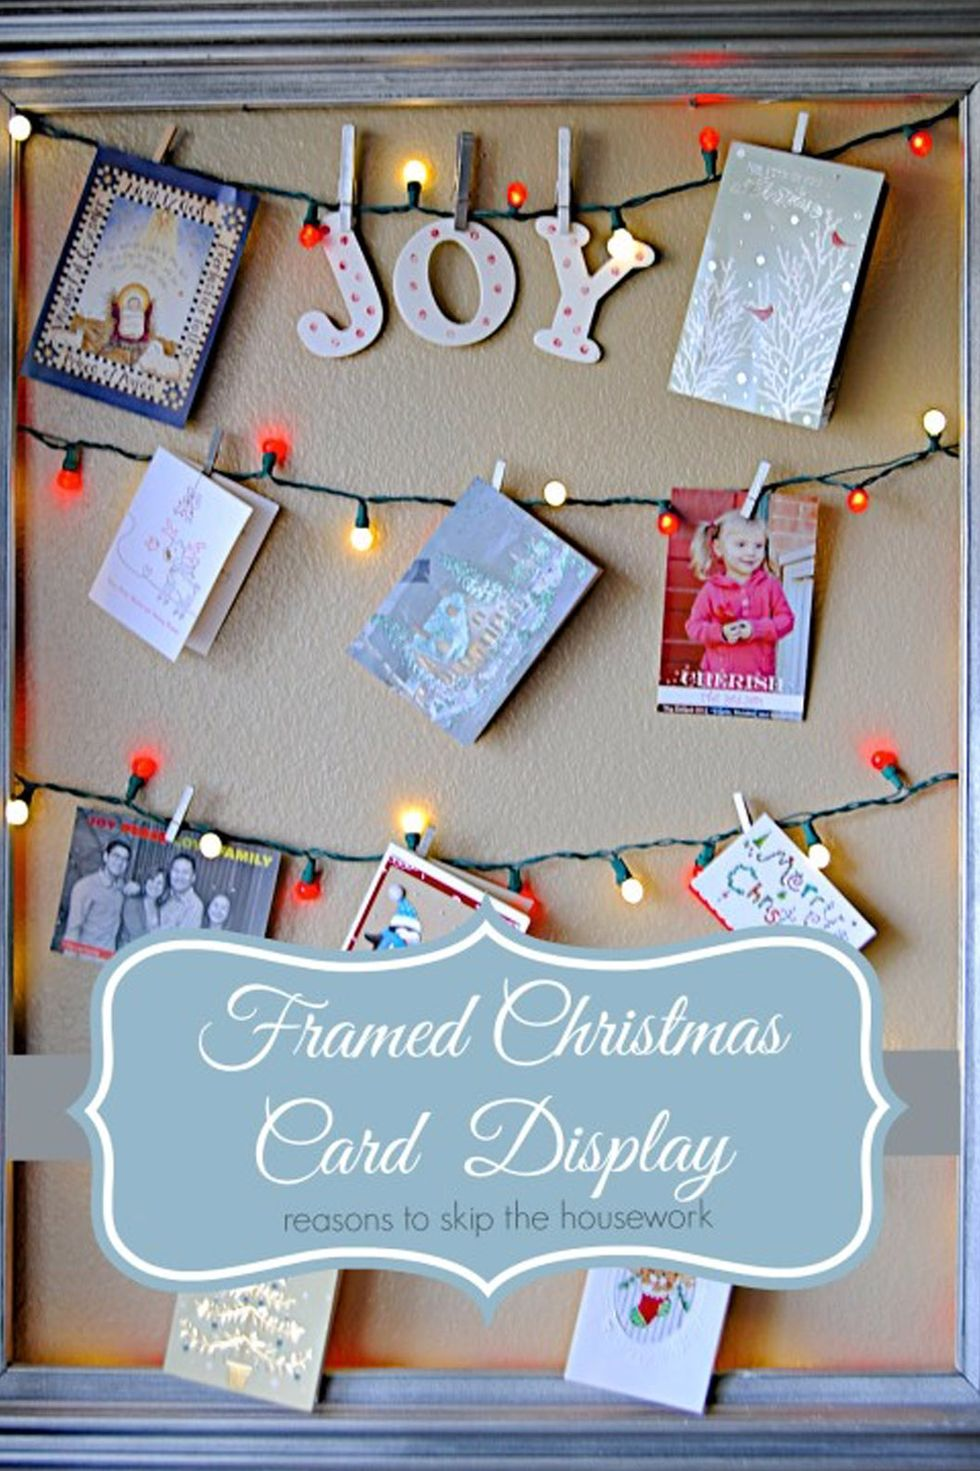 Holiday Card Board: These 25 DIY Christmas Card Holders - That Double As Festive Decor will allow you to beautifuly display your cards and will also give you some great decor.